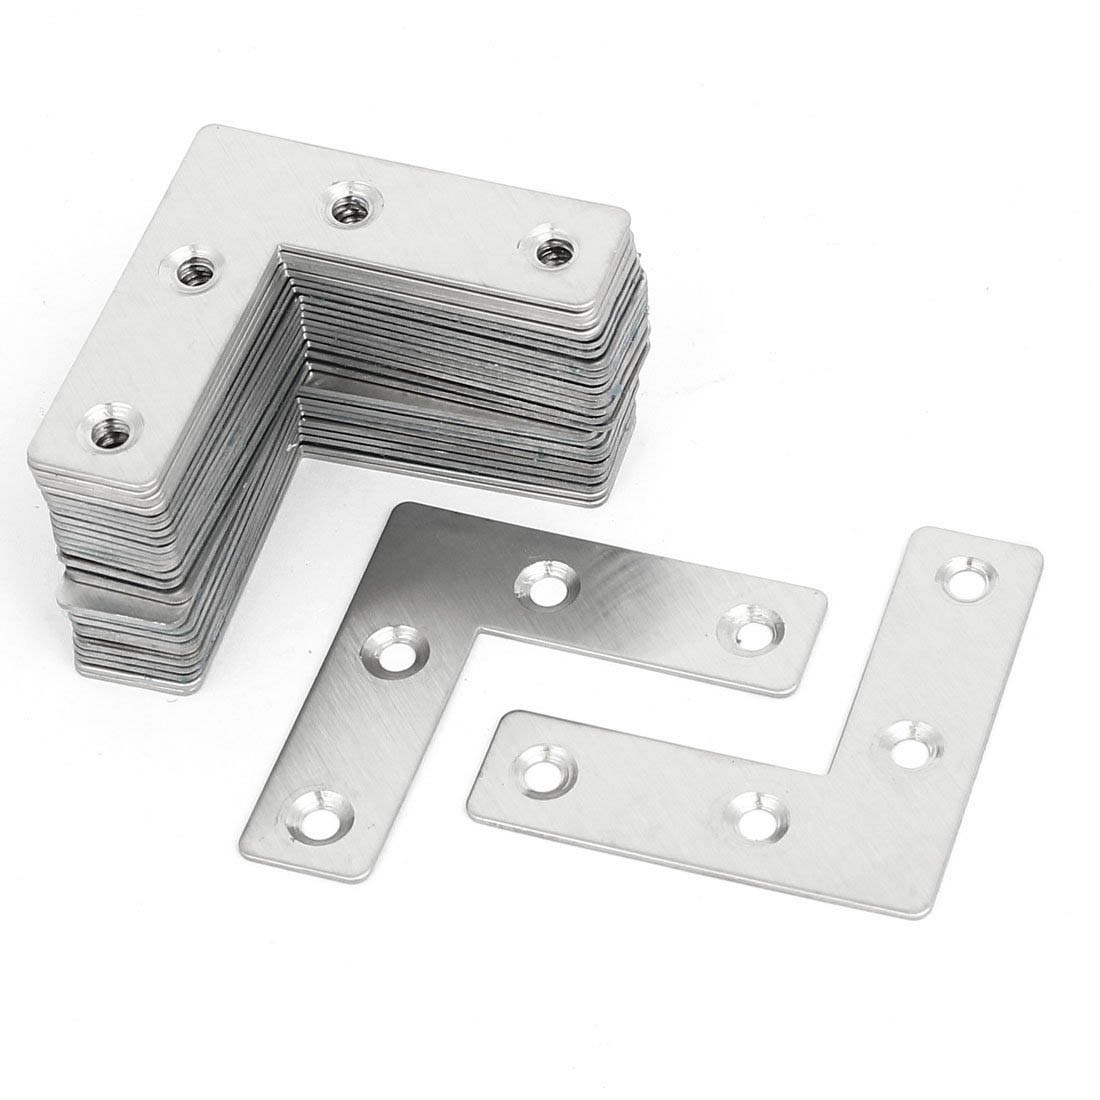 30pcs Stainless Steel Angle Plate Corner Brace 50mmx50mmx1mm L Shaped Flat Fixing Mending Repair Plates Brackets Repair Bracket